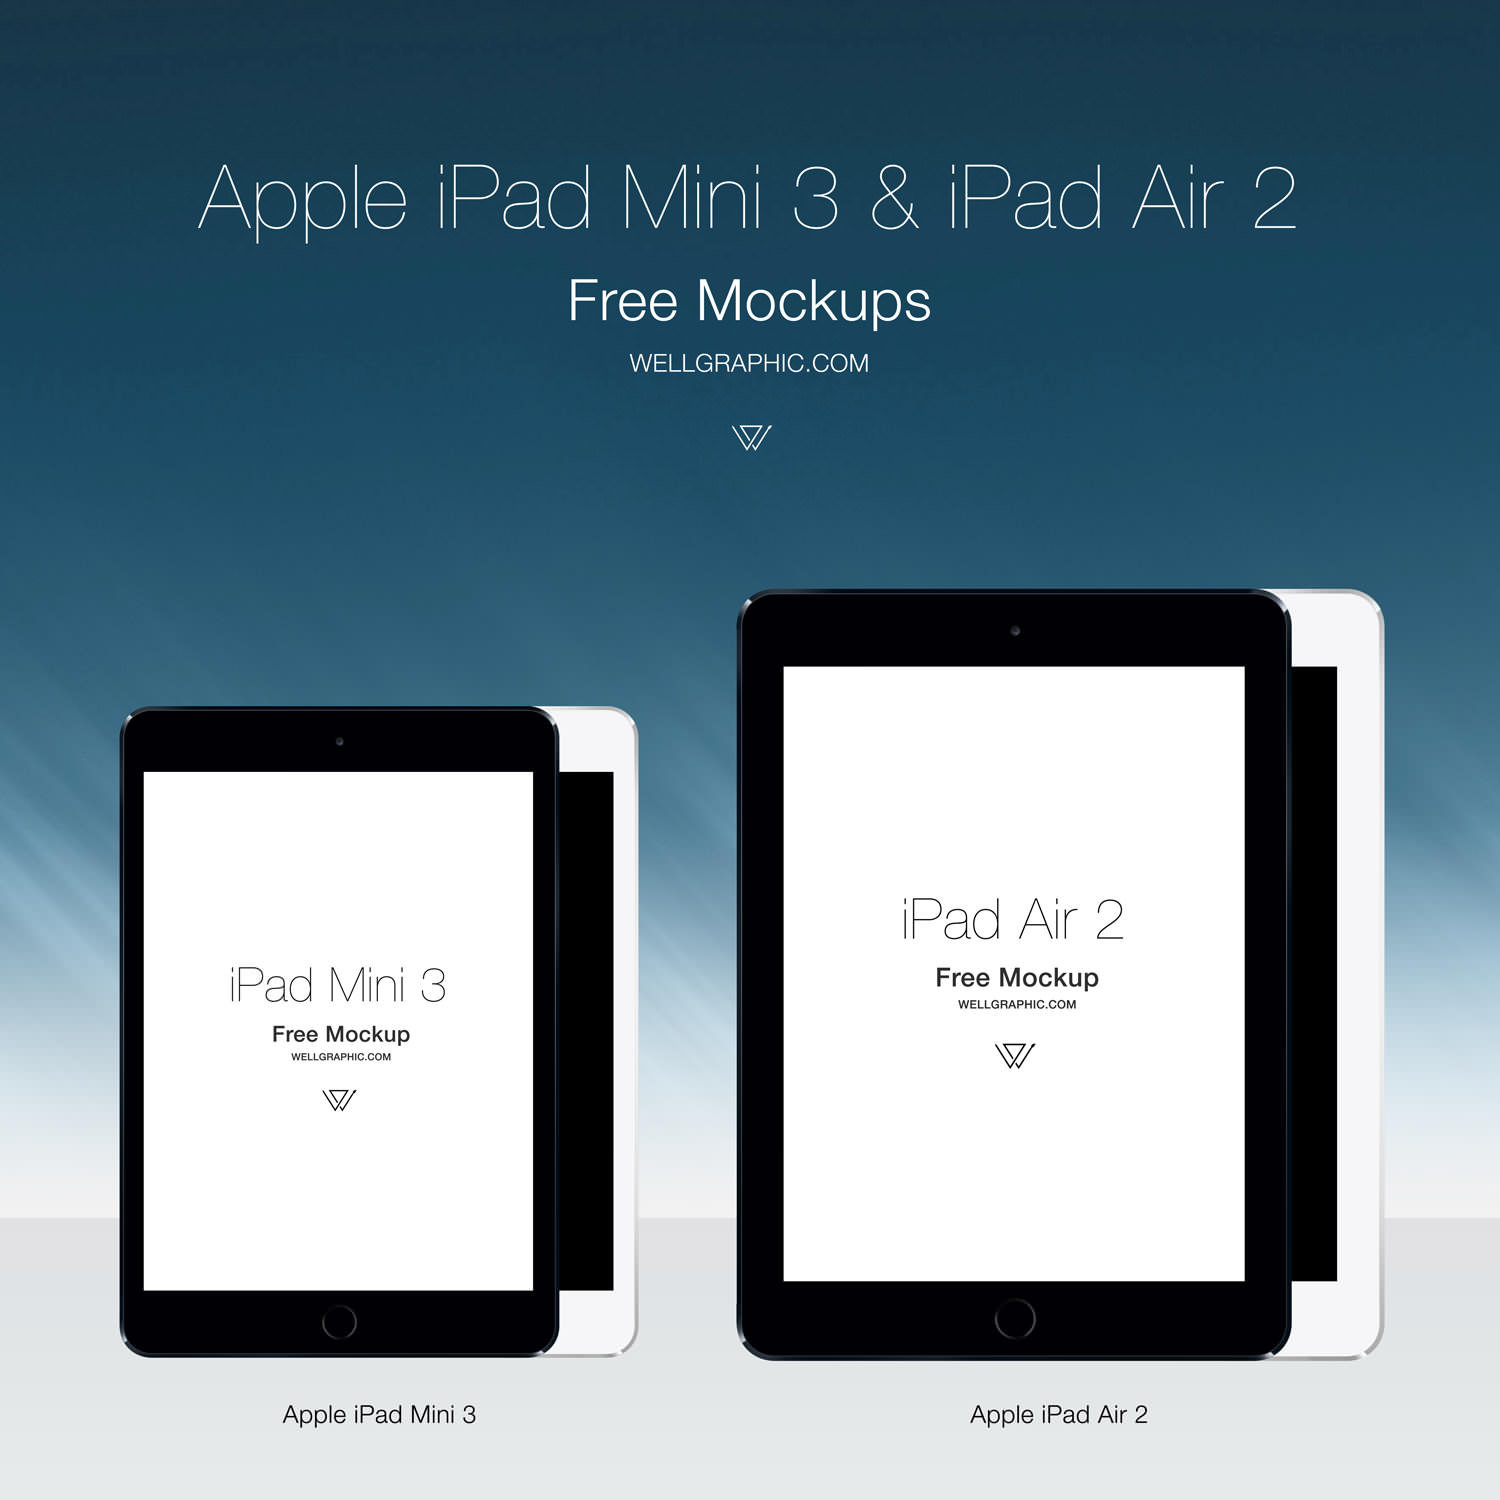 01_20141017_ipad-air-2-mini3-freemockup